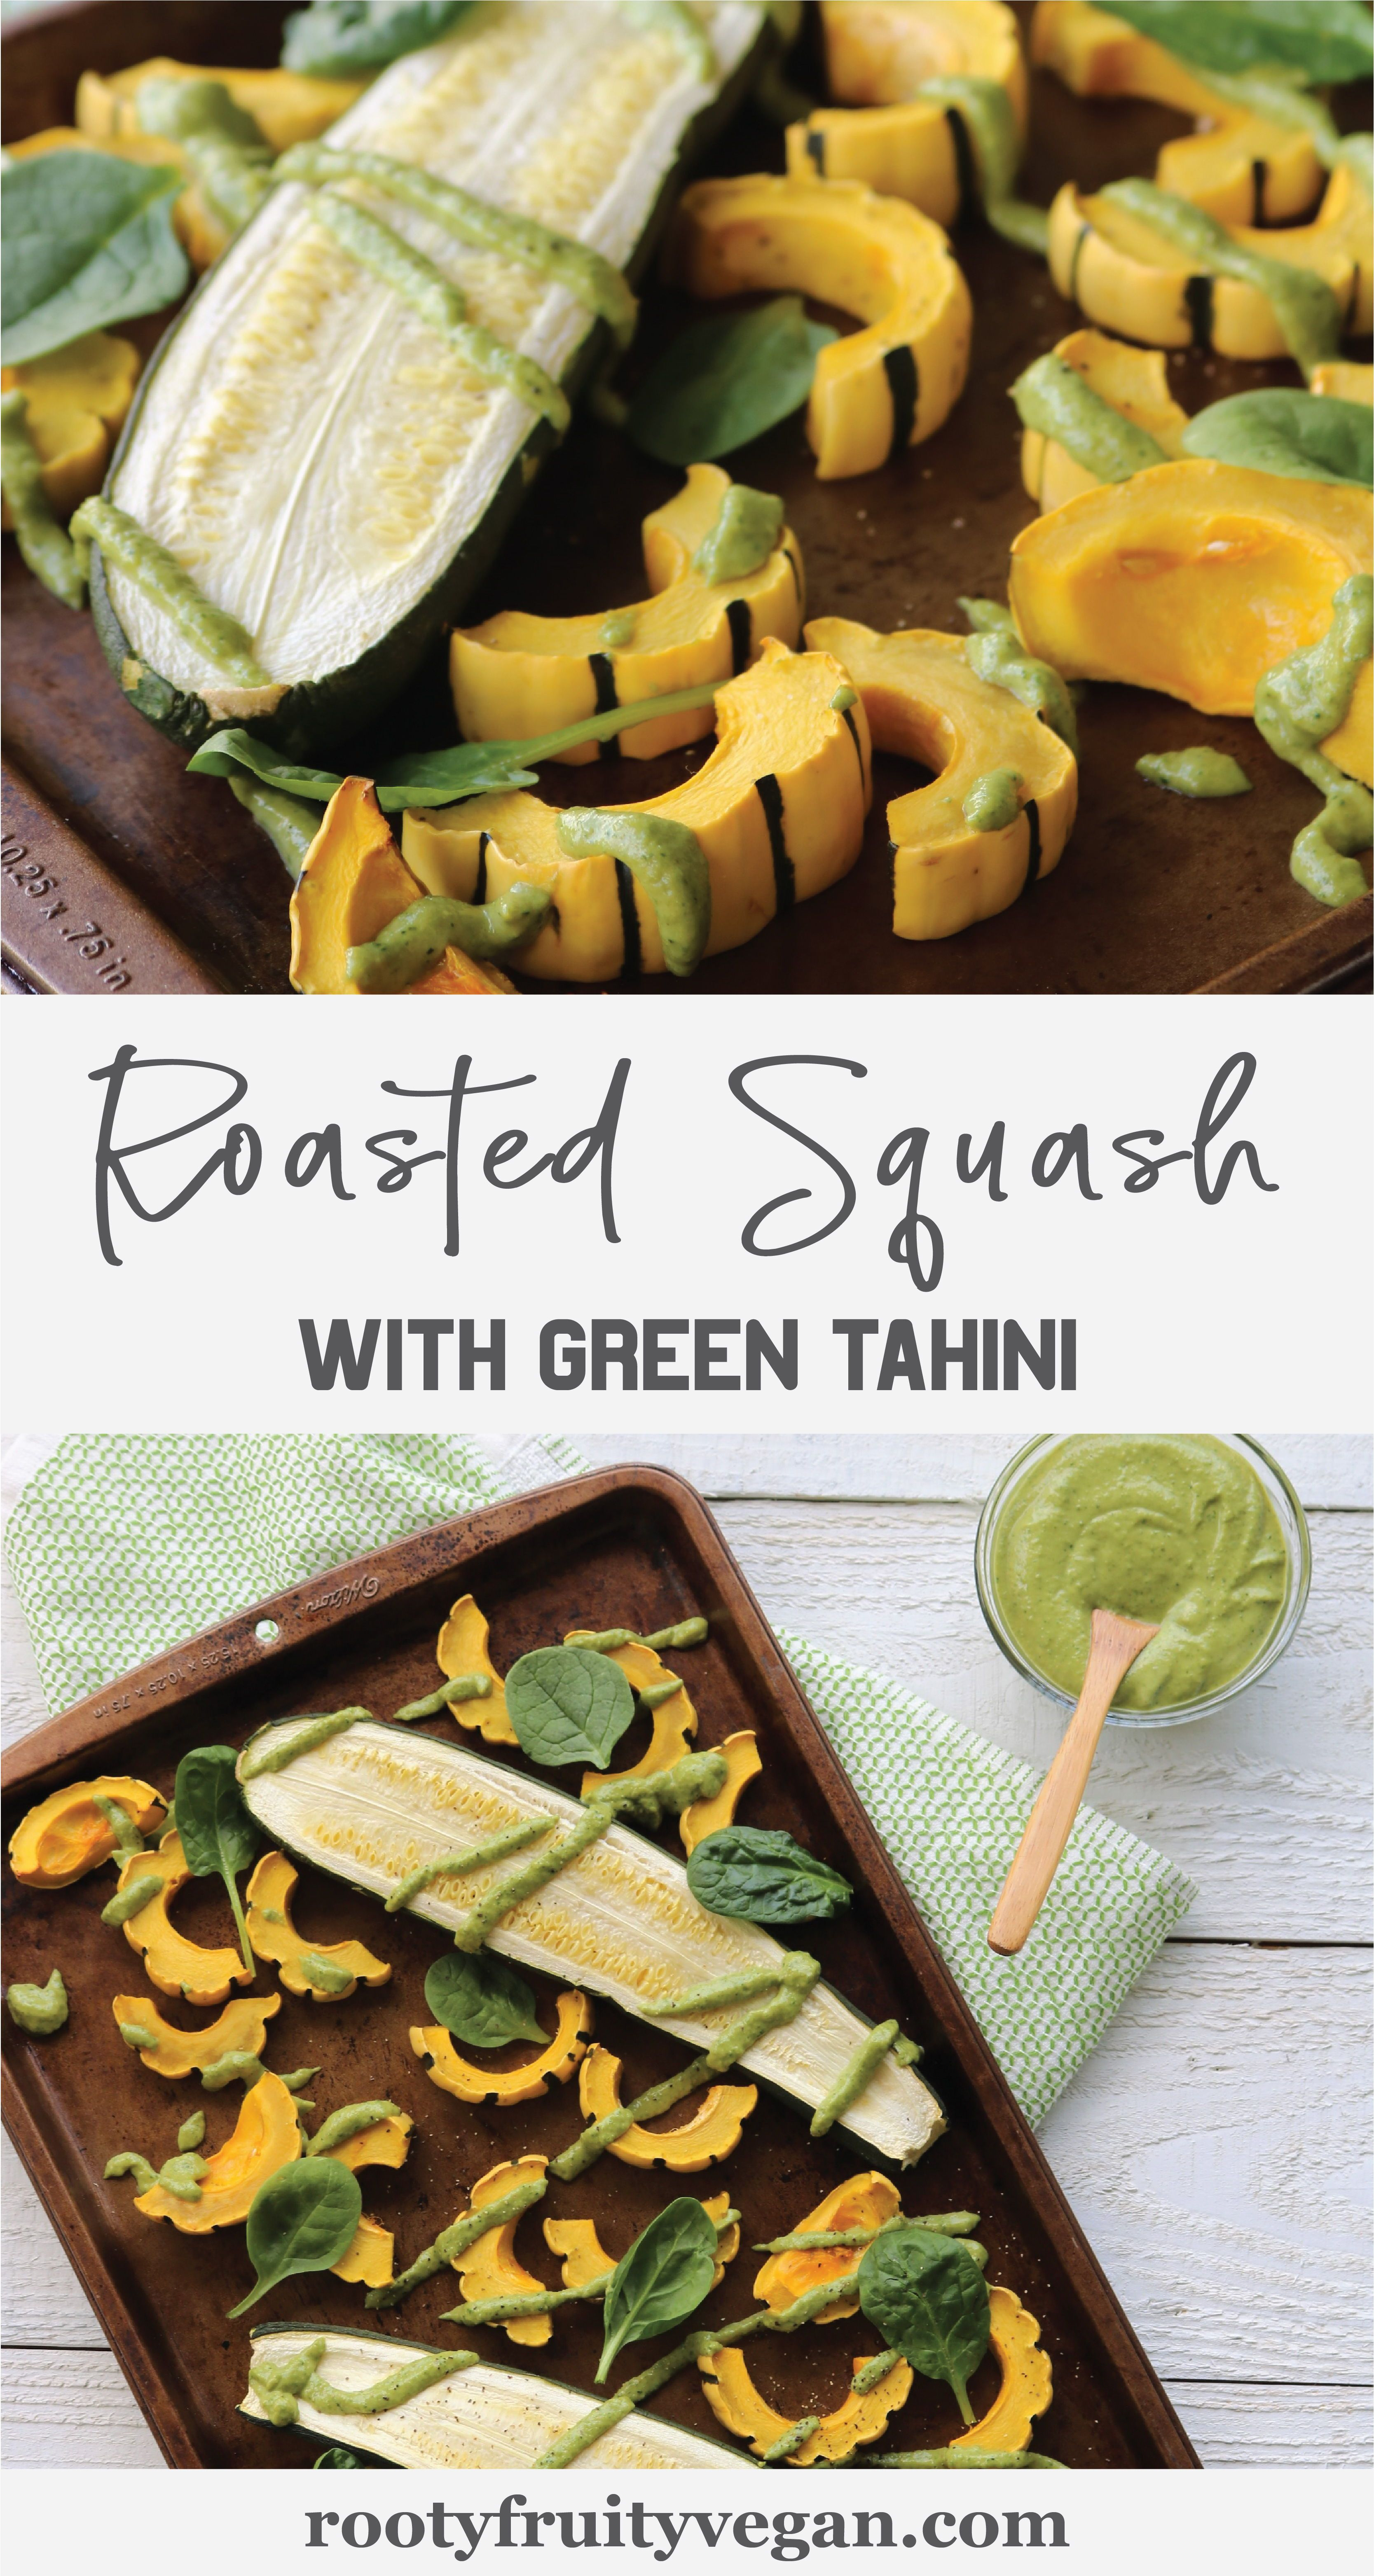 Click through to learn how to roast squash perfectly without using oil! This healthy vegan recipe is nutritious and delicious. The green tahini sauce is thick and creamy and can be used on salads, burgers, wraps, and more. Try this vegan side dish with your next meal and get those veggies in!  #eatyourveggies  #squashrecipes  #roastedsquash  #vegandressing  #vegansquashrecipe  #oilfree  #plantbased  #wfpb